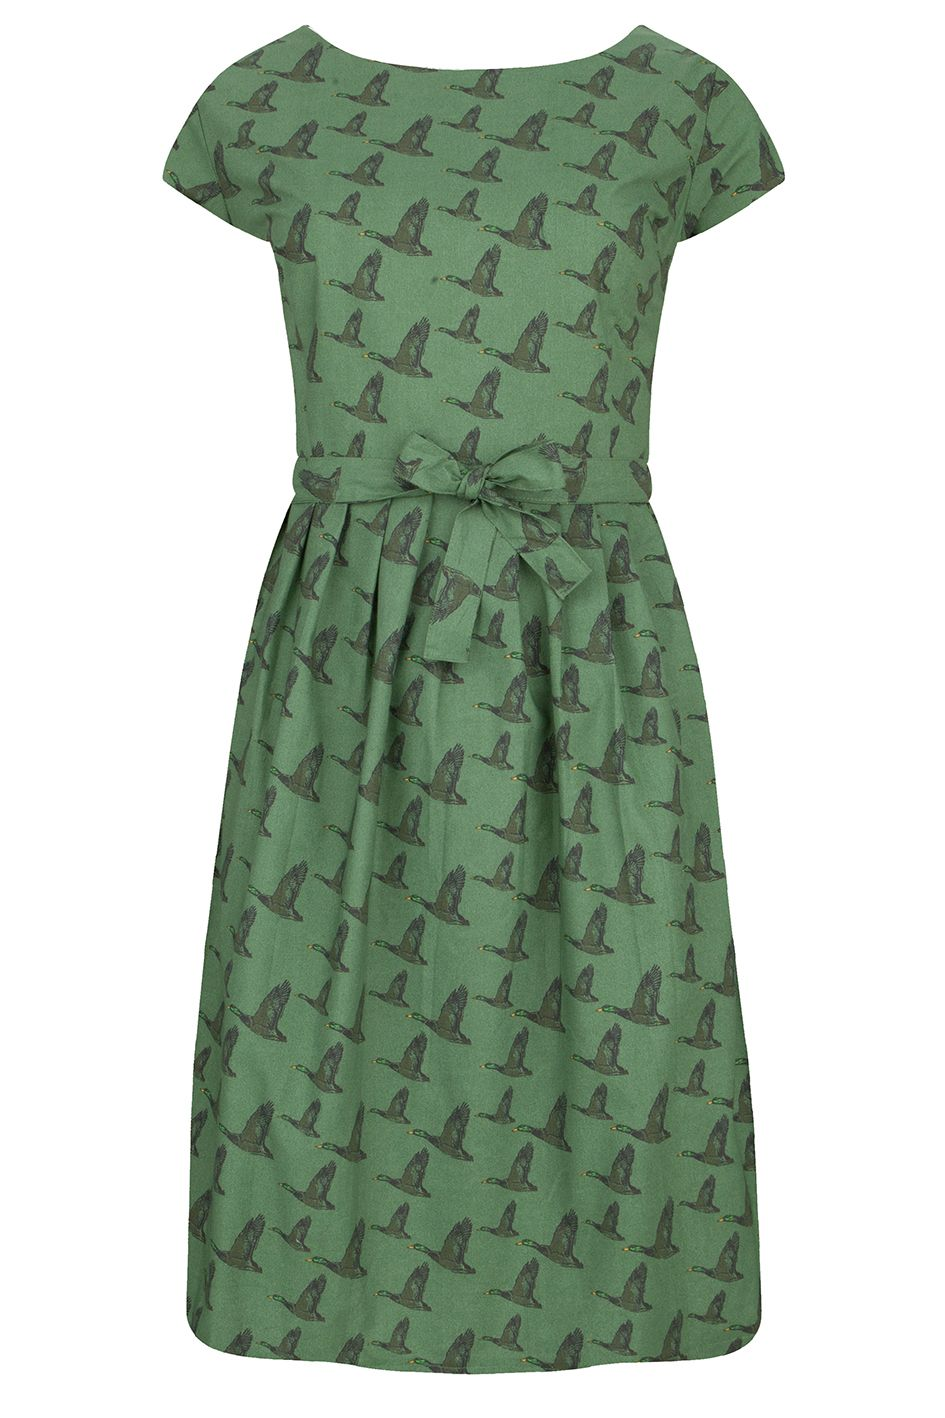 This forrest green Dress with a fun flying duck-print has a round ...